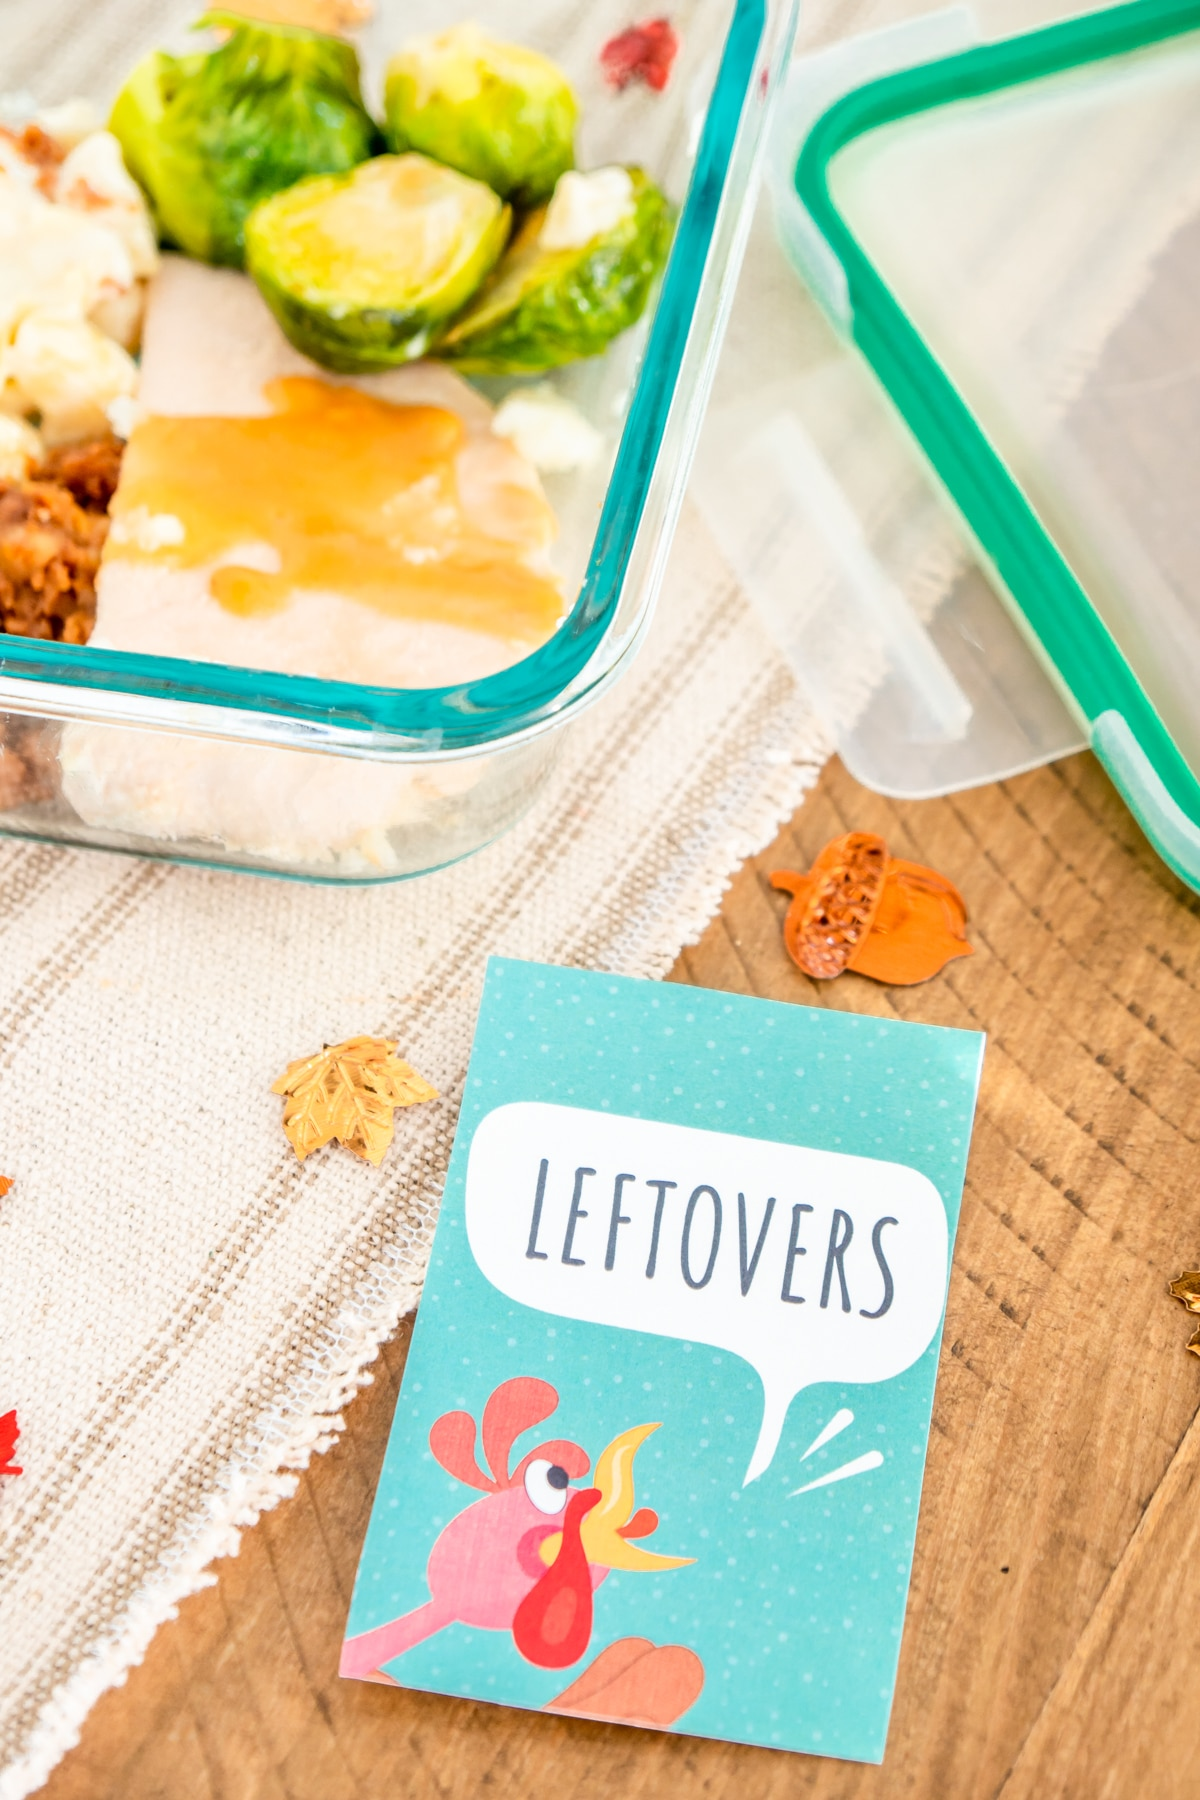 Thanksgiving Leftovers gift tag with a plastic storage container